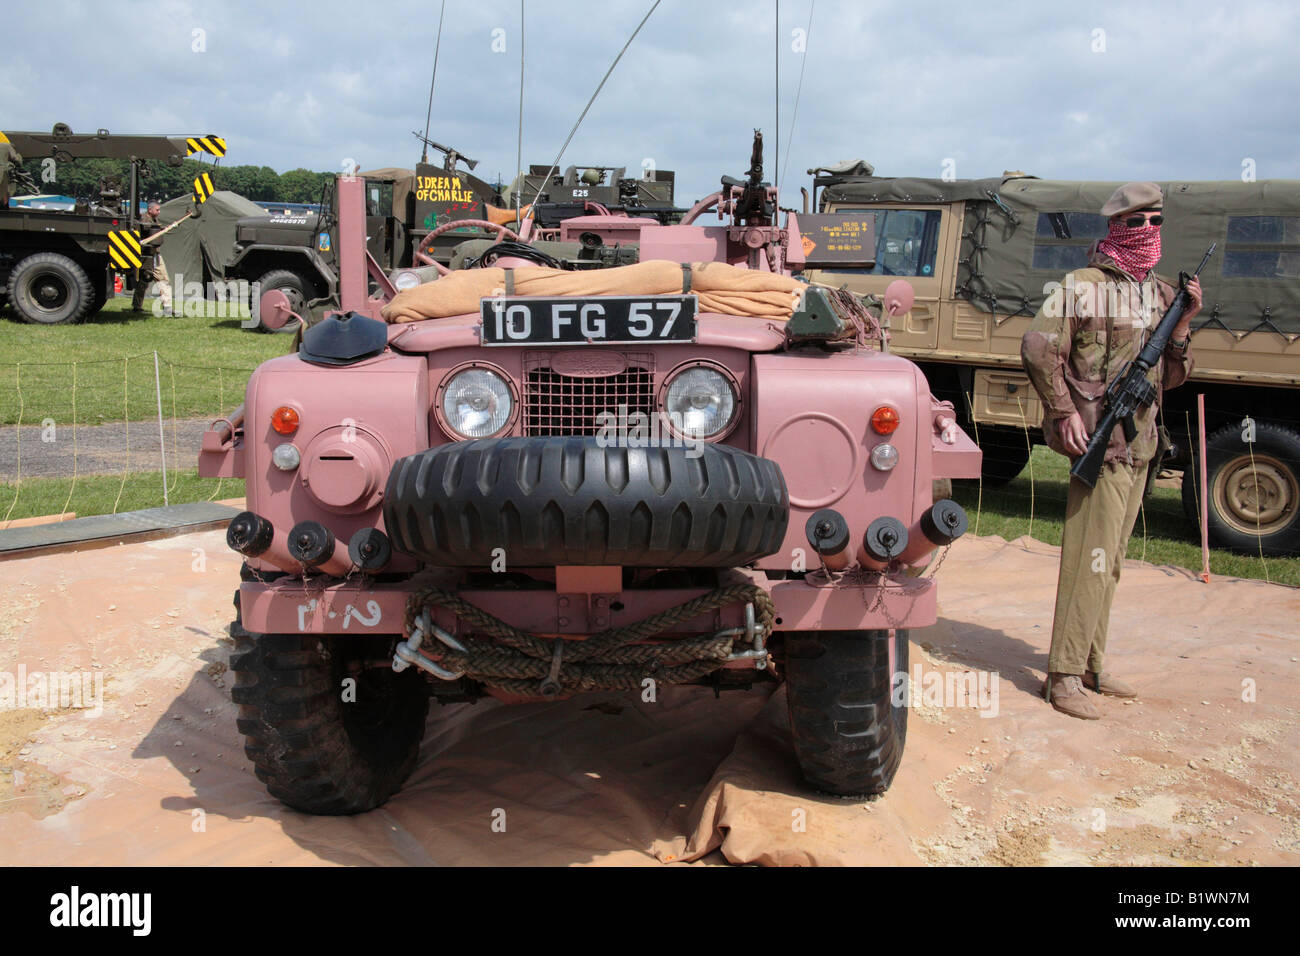 panther italeri kits land landrover a kit vehicle plastic recon rover sale scale model sas pink for s